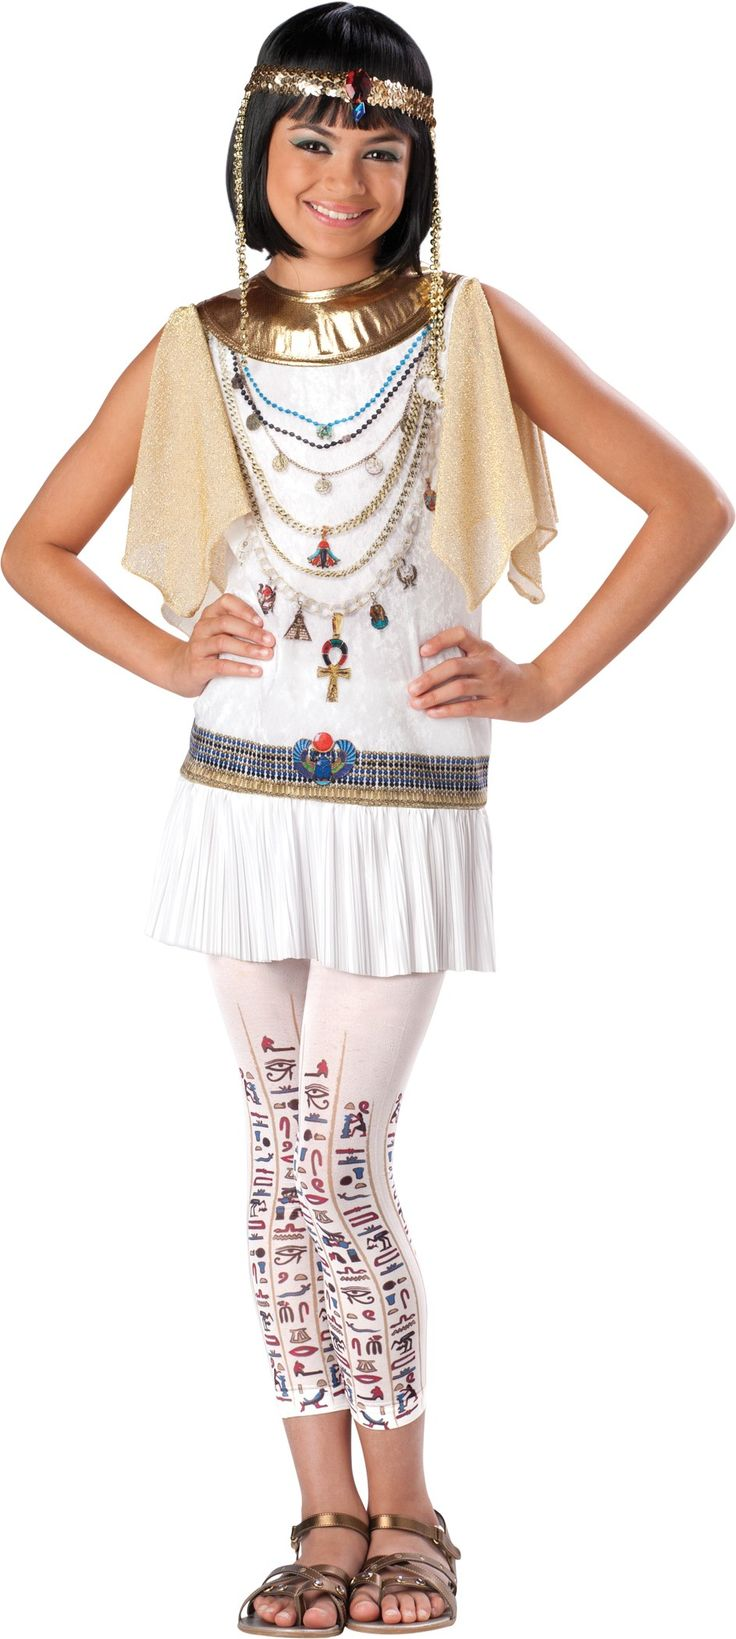 26 Best Christmas Movie Costumes images  Christmas